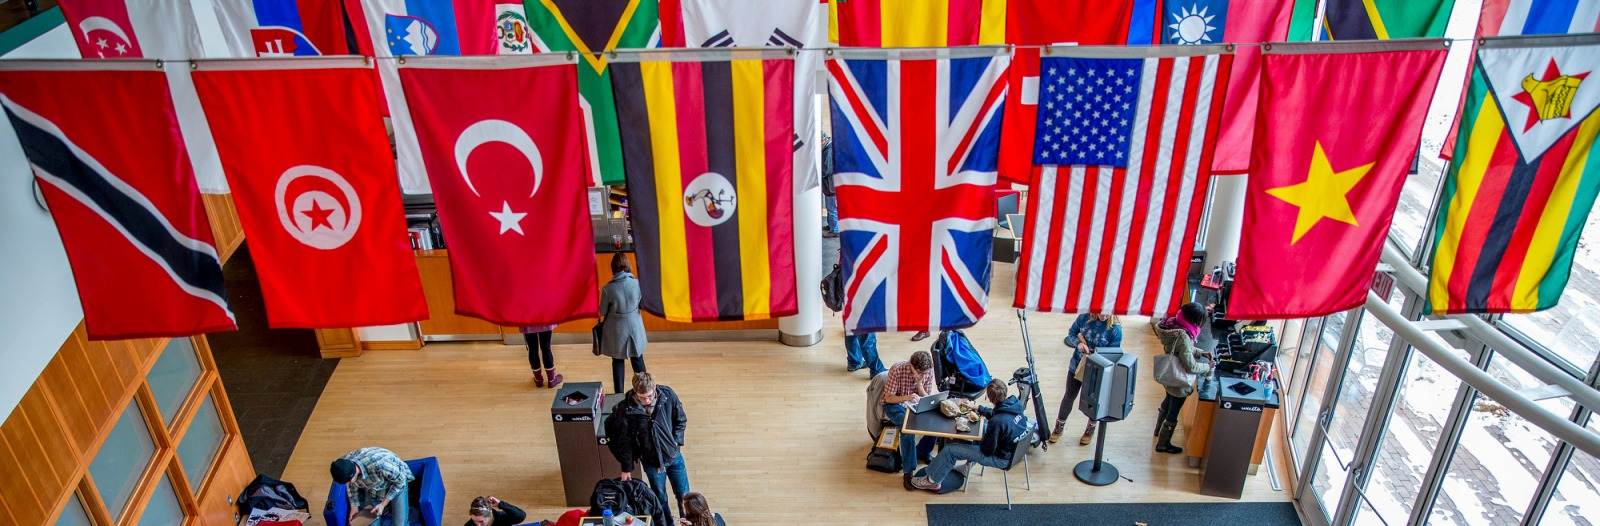 International Applicants | Grinnell College